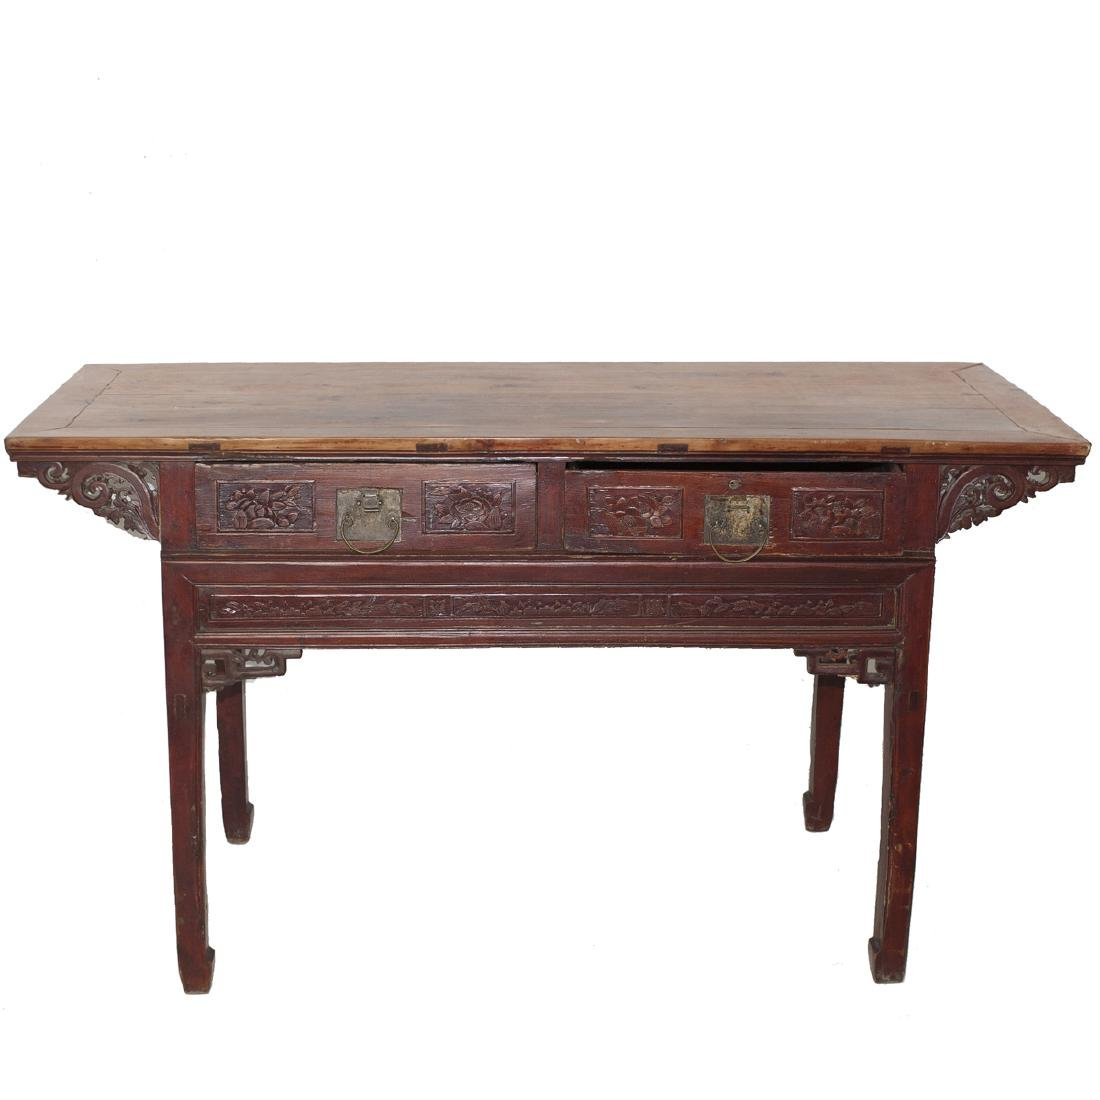 Antique Chinese Wooden Alter Table